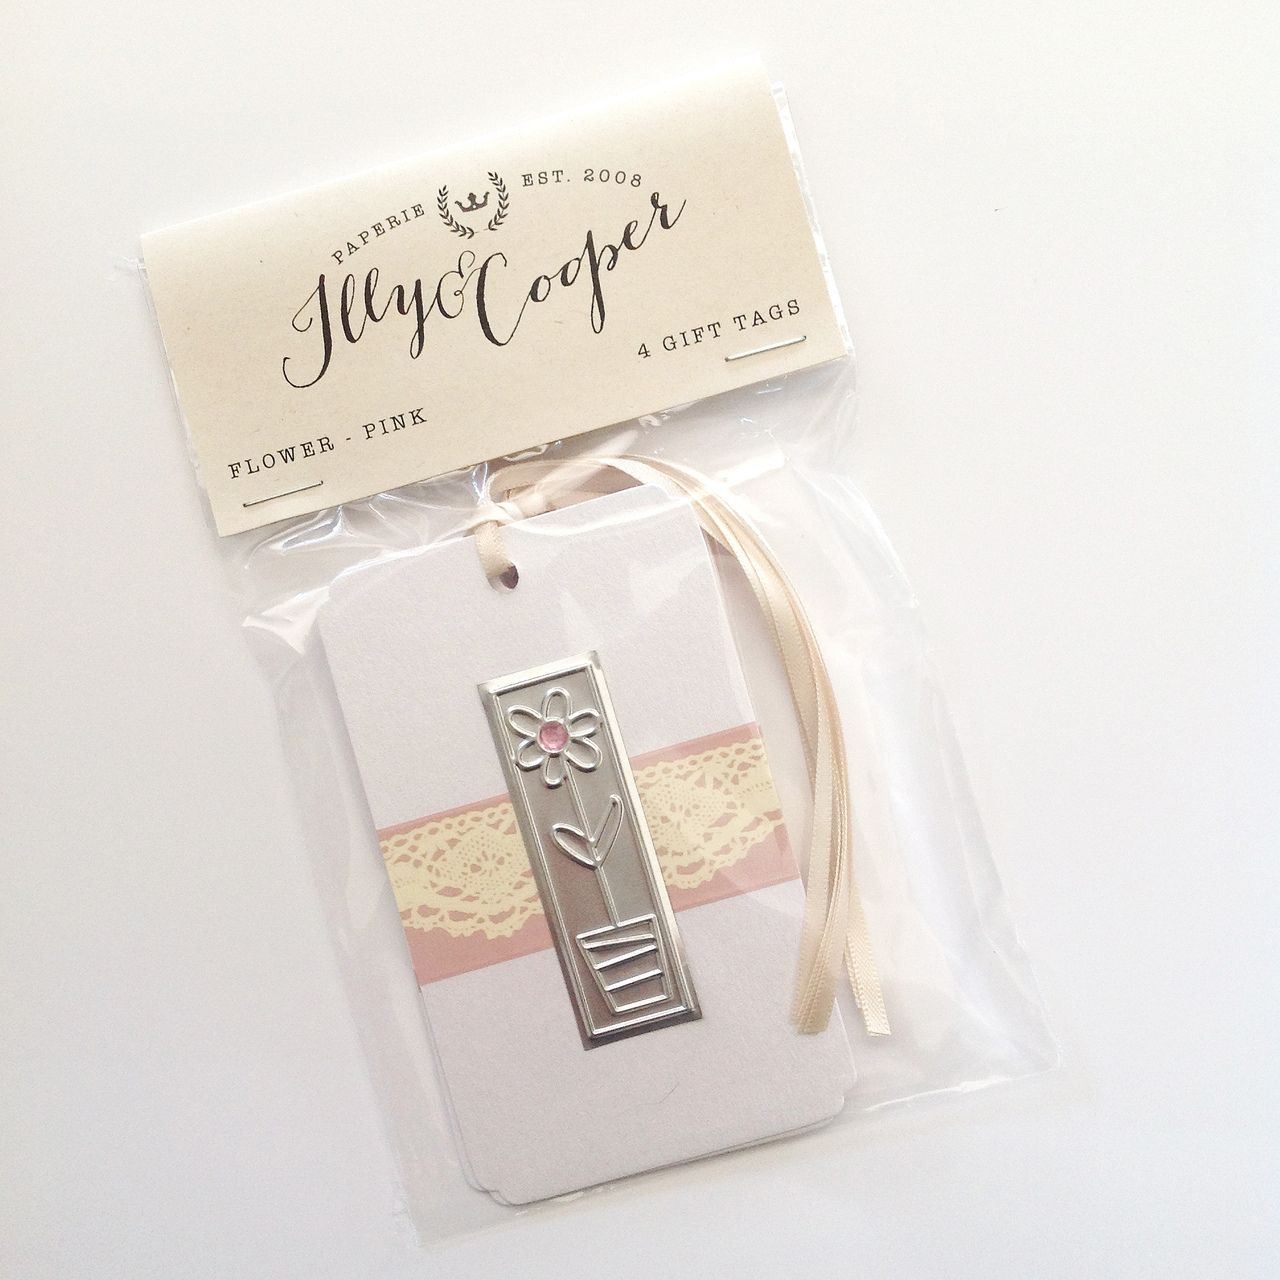 craftsandcards.com - Flower Tag - Pink, R28.00 (http://www.craftsandcards.com/flower-tag-pink/)